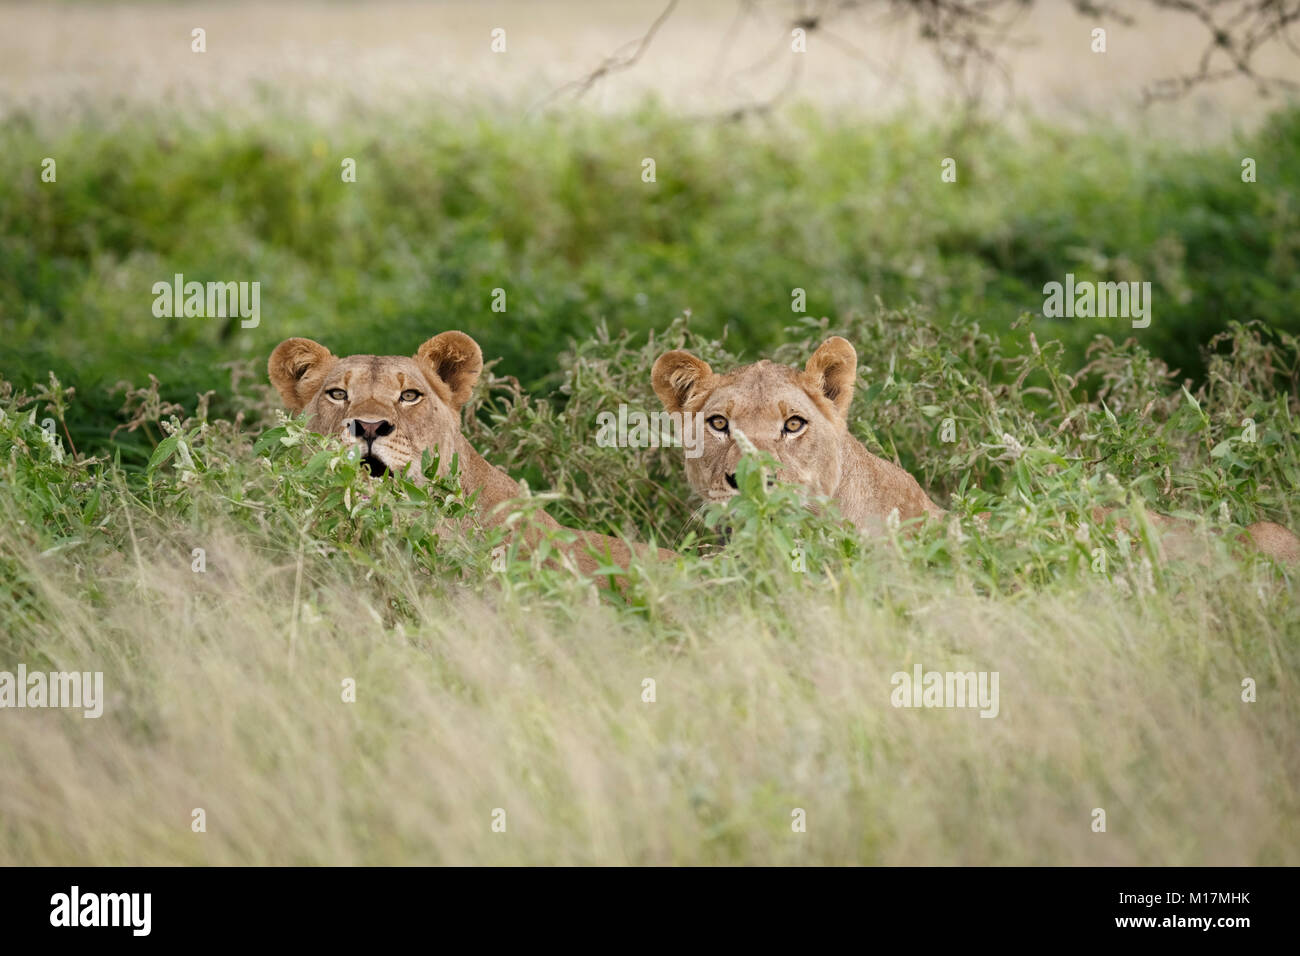 two lionesses hiding in long green grass while panting and staring in central kalahari game reserve in Botswana - Stock Photo